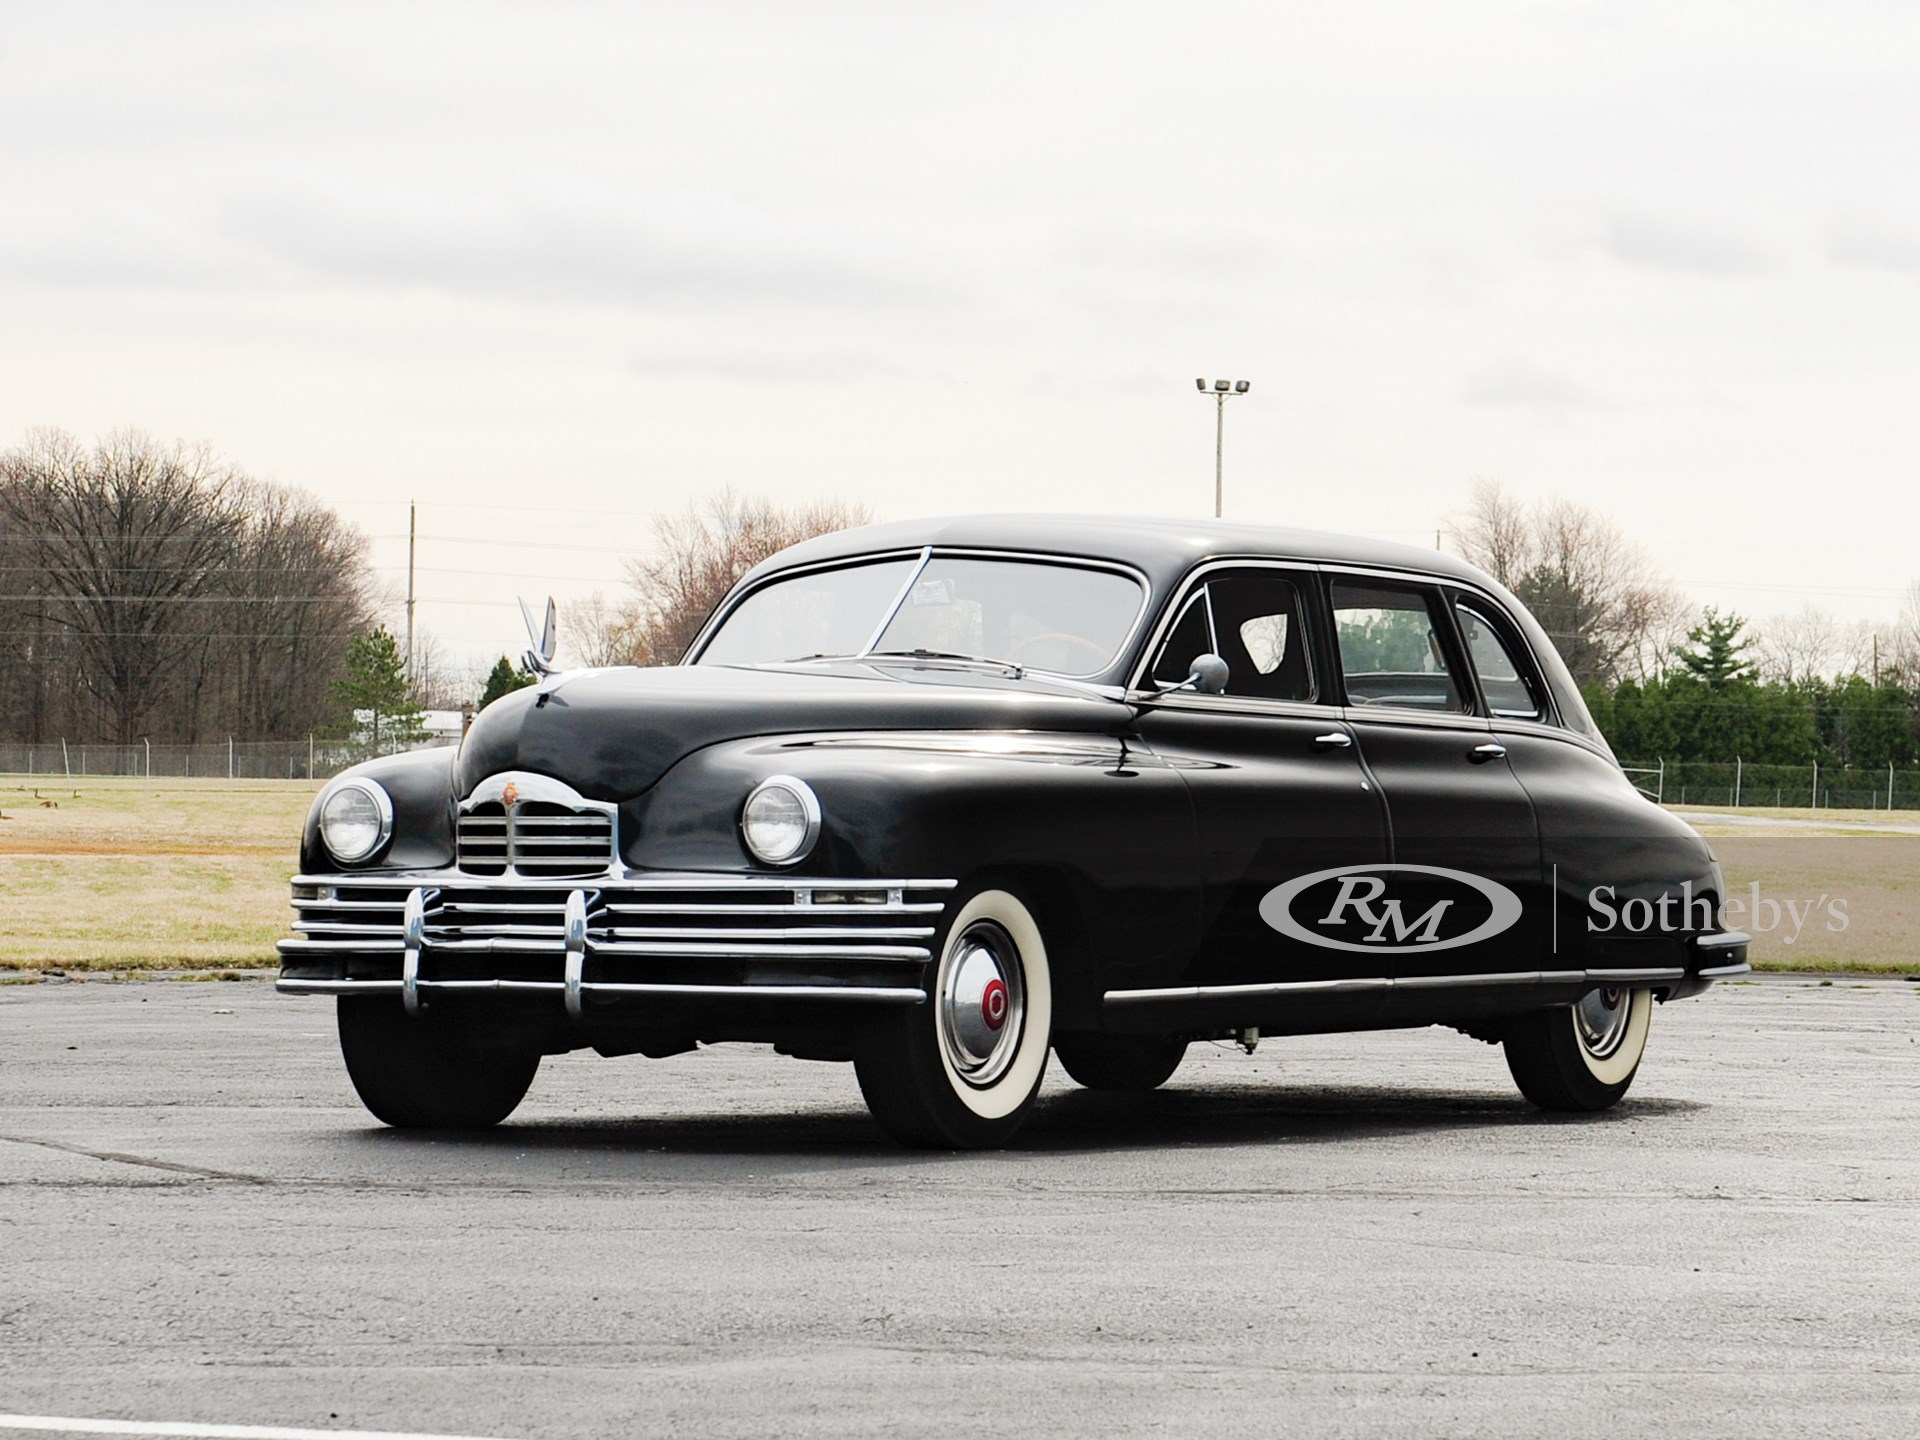 1948 Packard Super Eight Deluxe Limousine